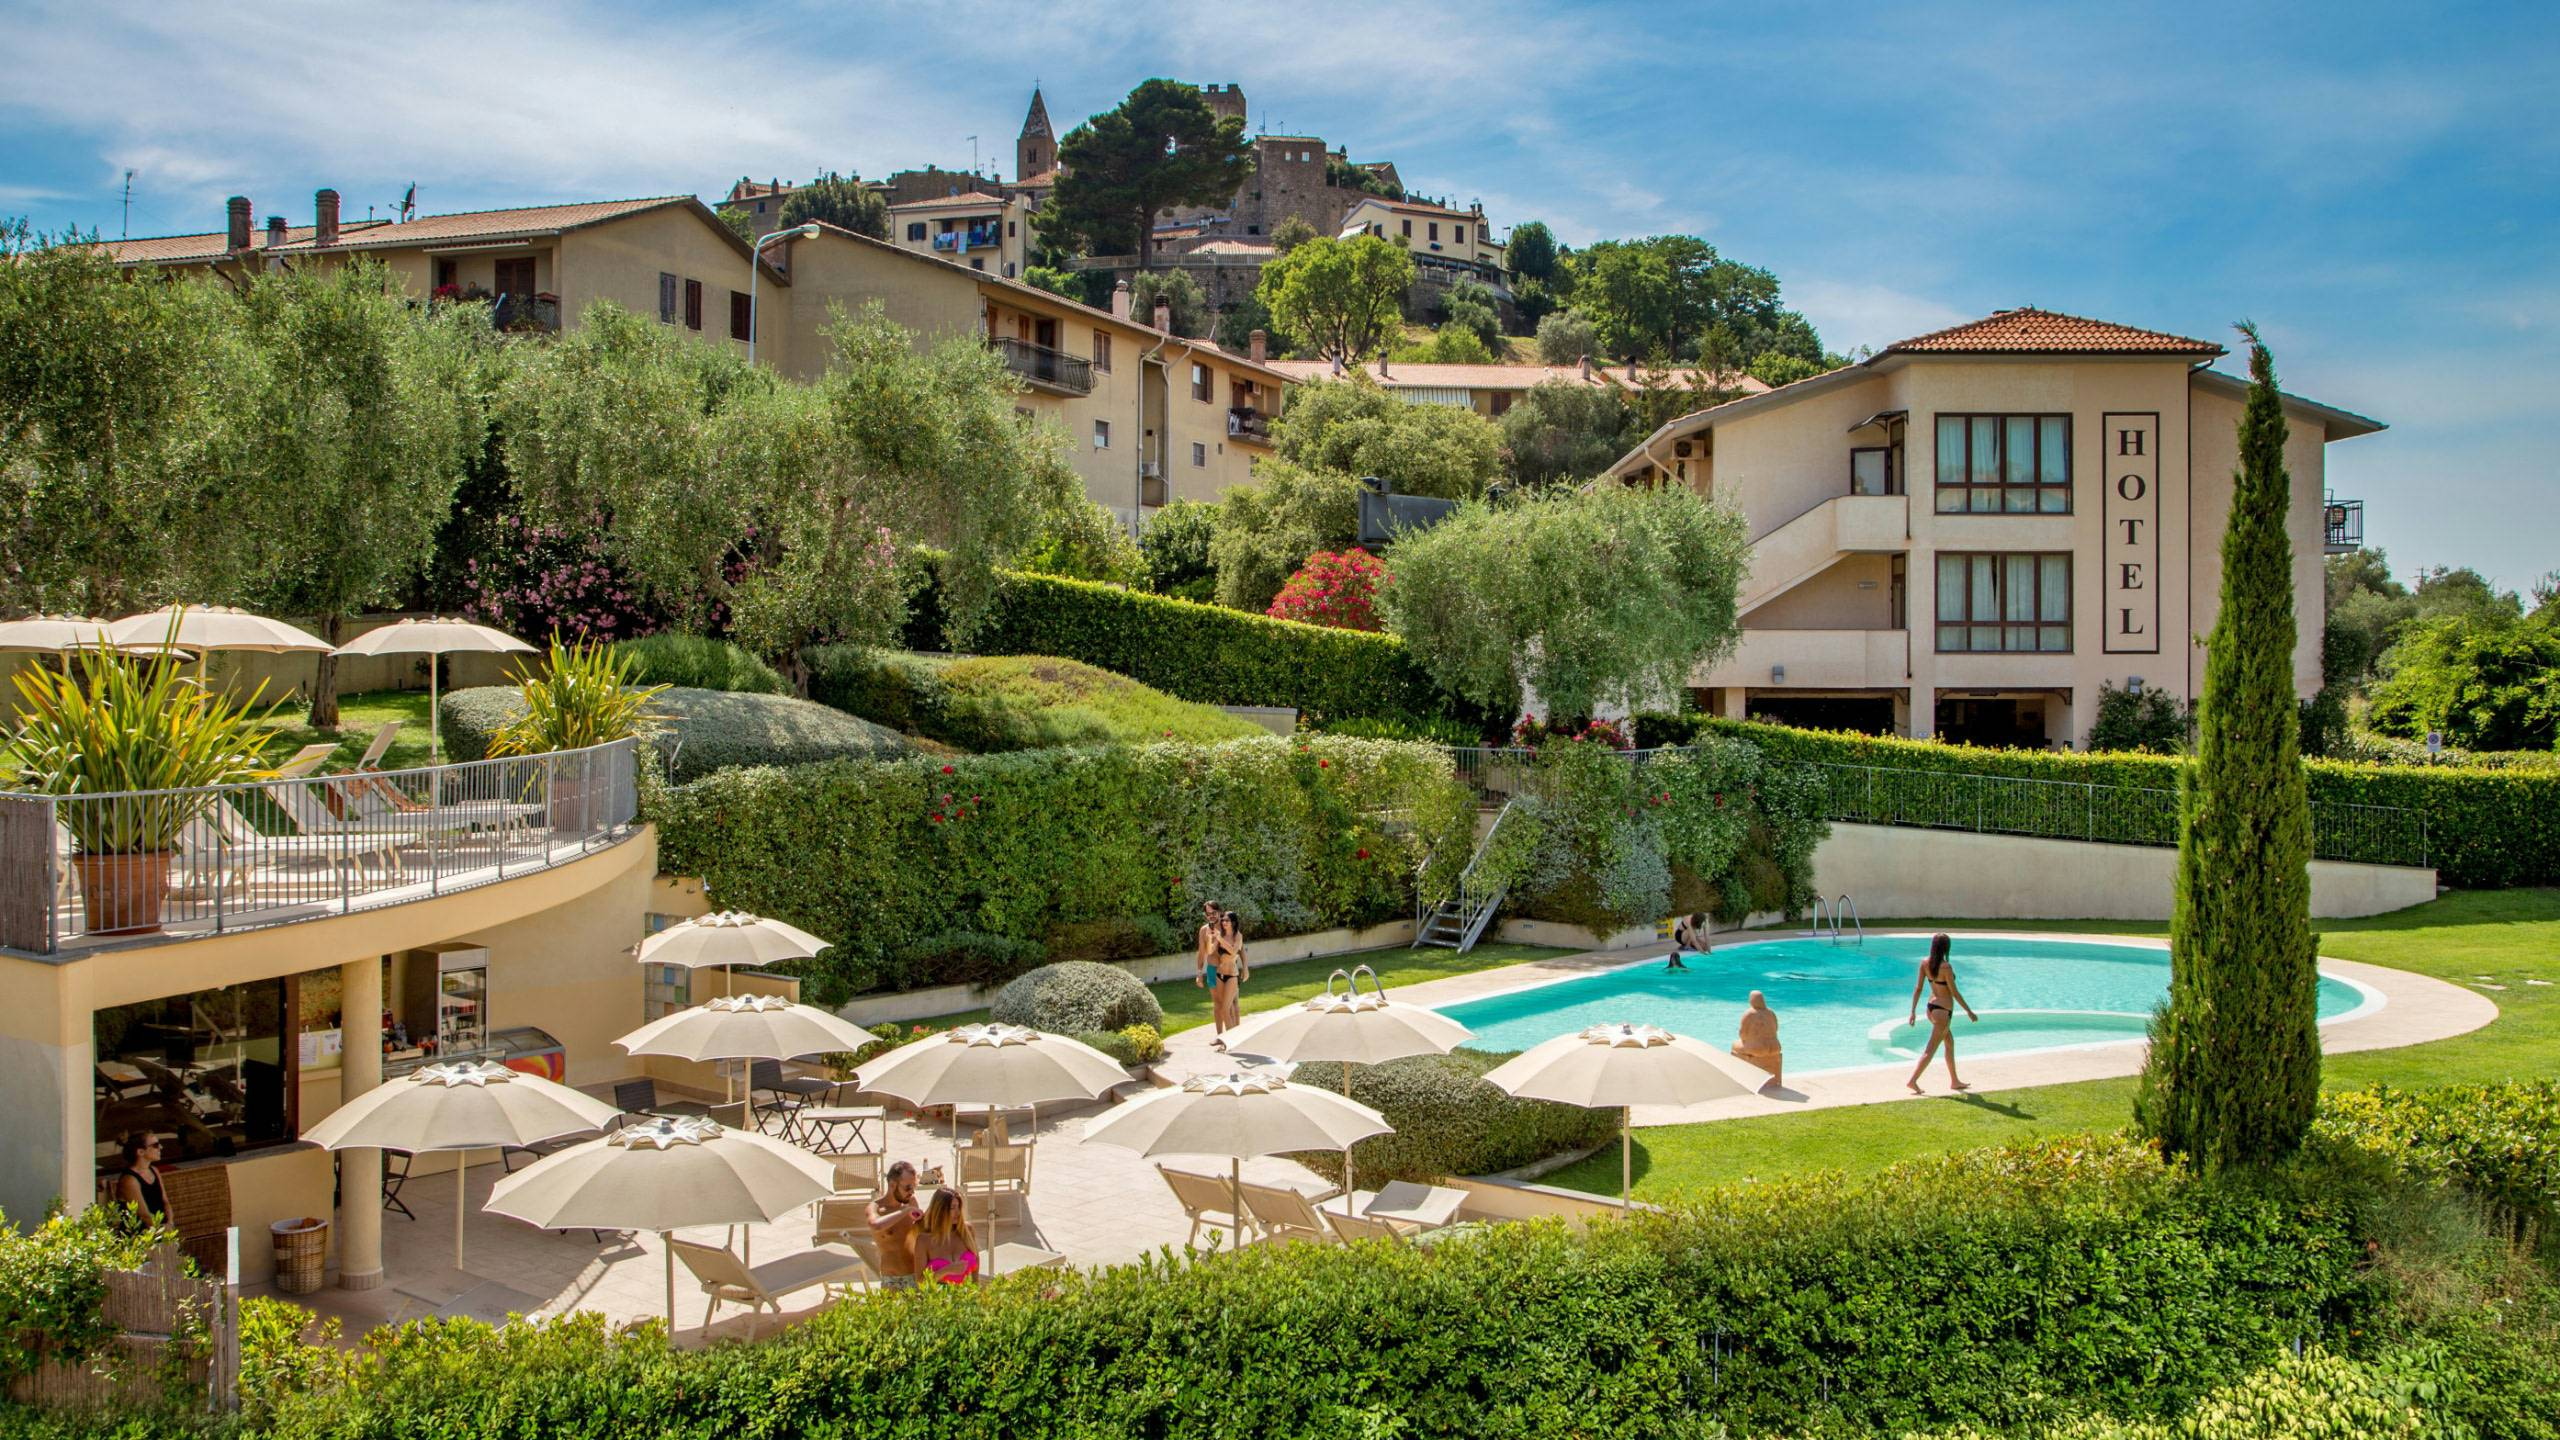 Hotel-Residence-Valle-del-Buttero-Capalbio-pool-51